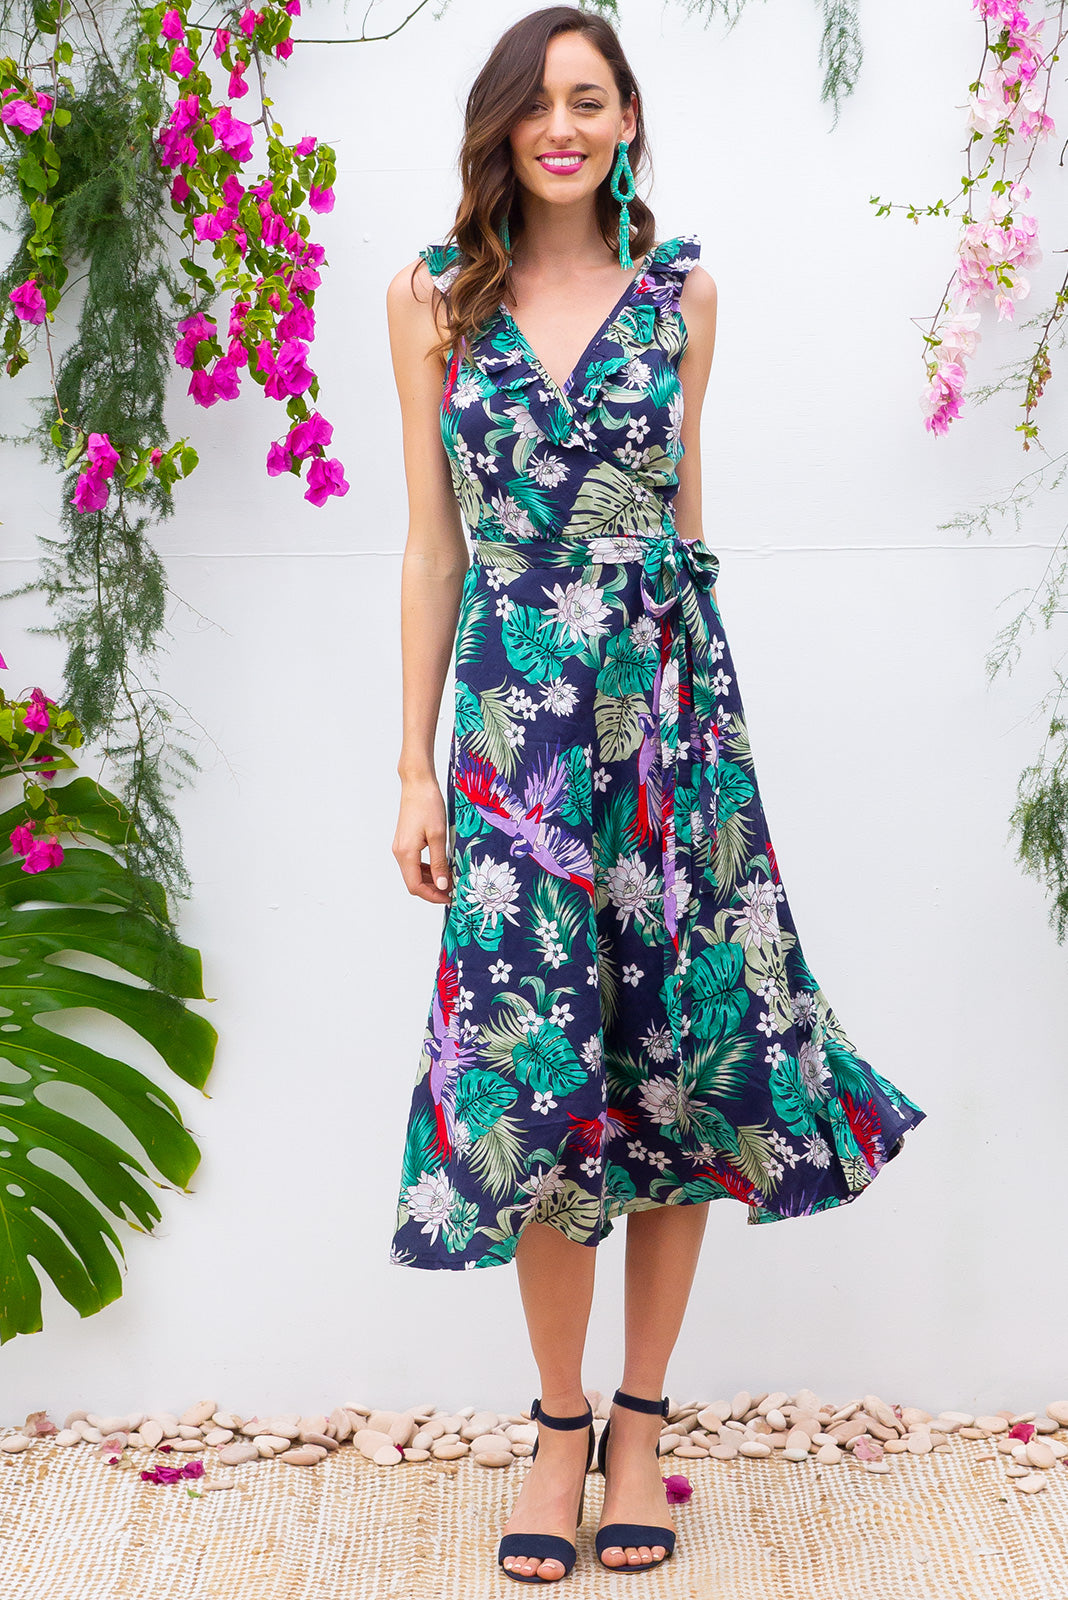 Pablo Amazonian Navy Midi Wrap Dress features a flattering wrap around shape, sleeveless bodice with a frill and comes in a bright dark navy based tropical print on cotton rayon blend